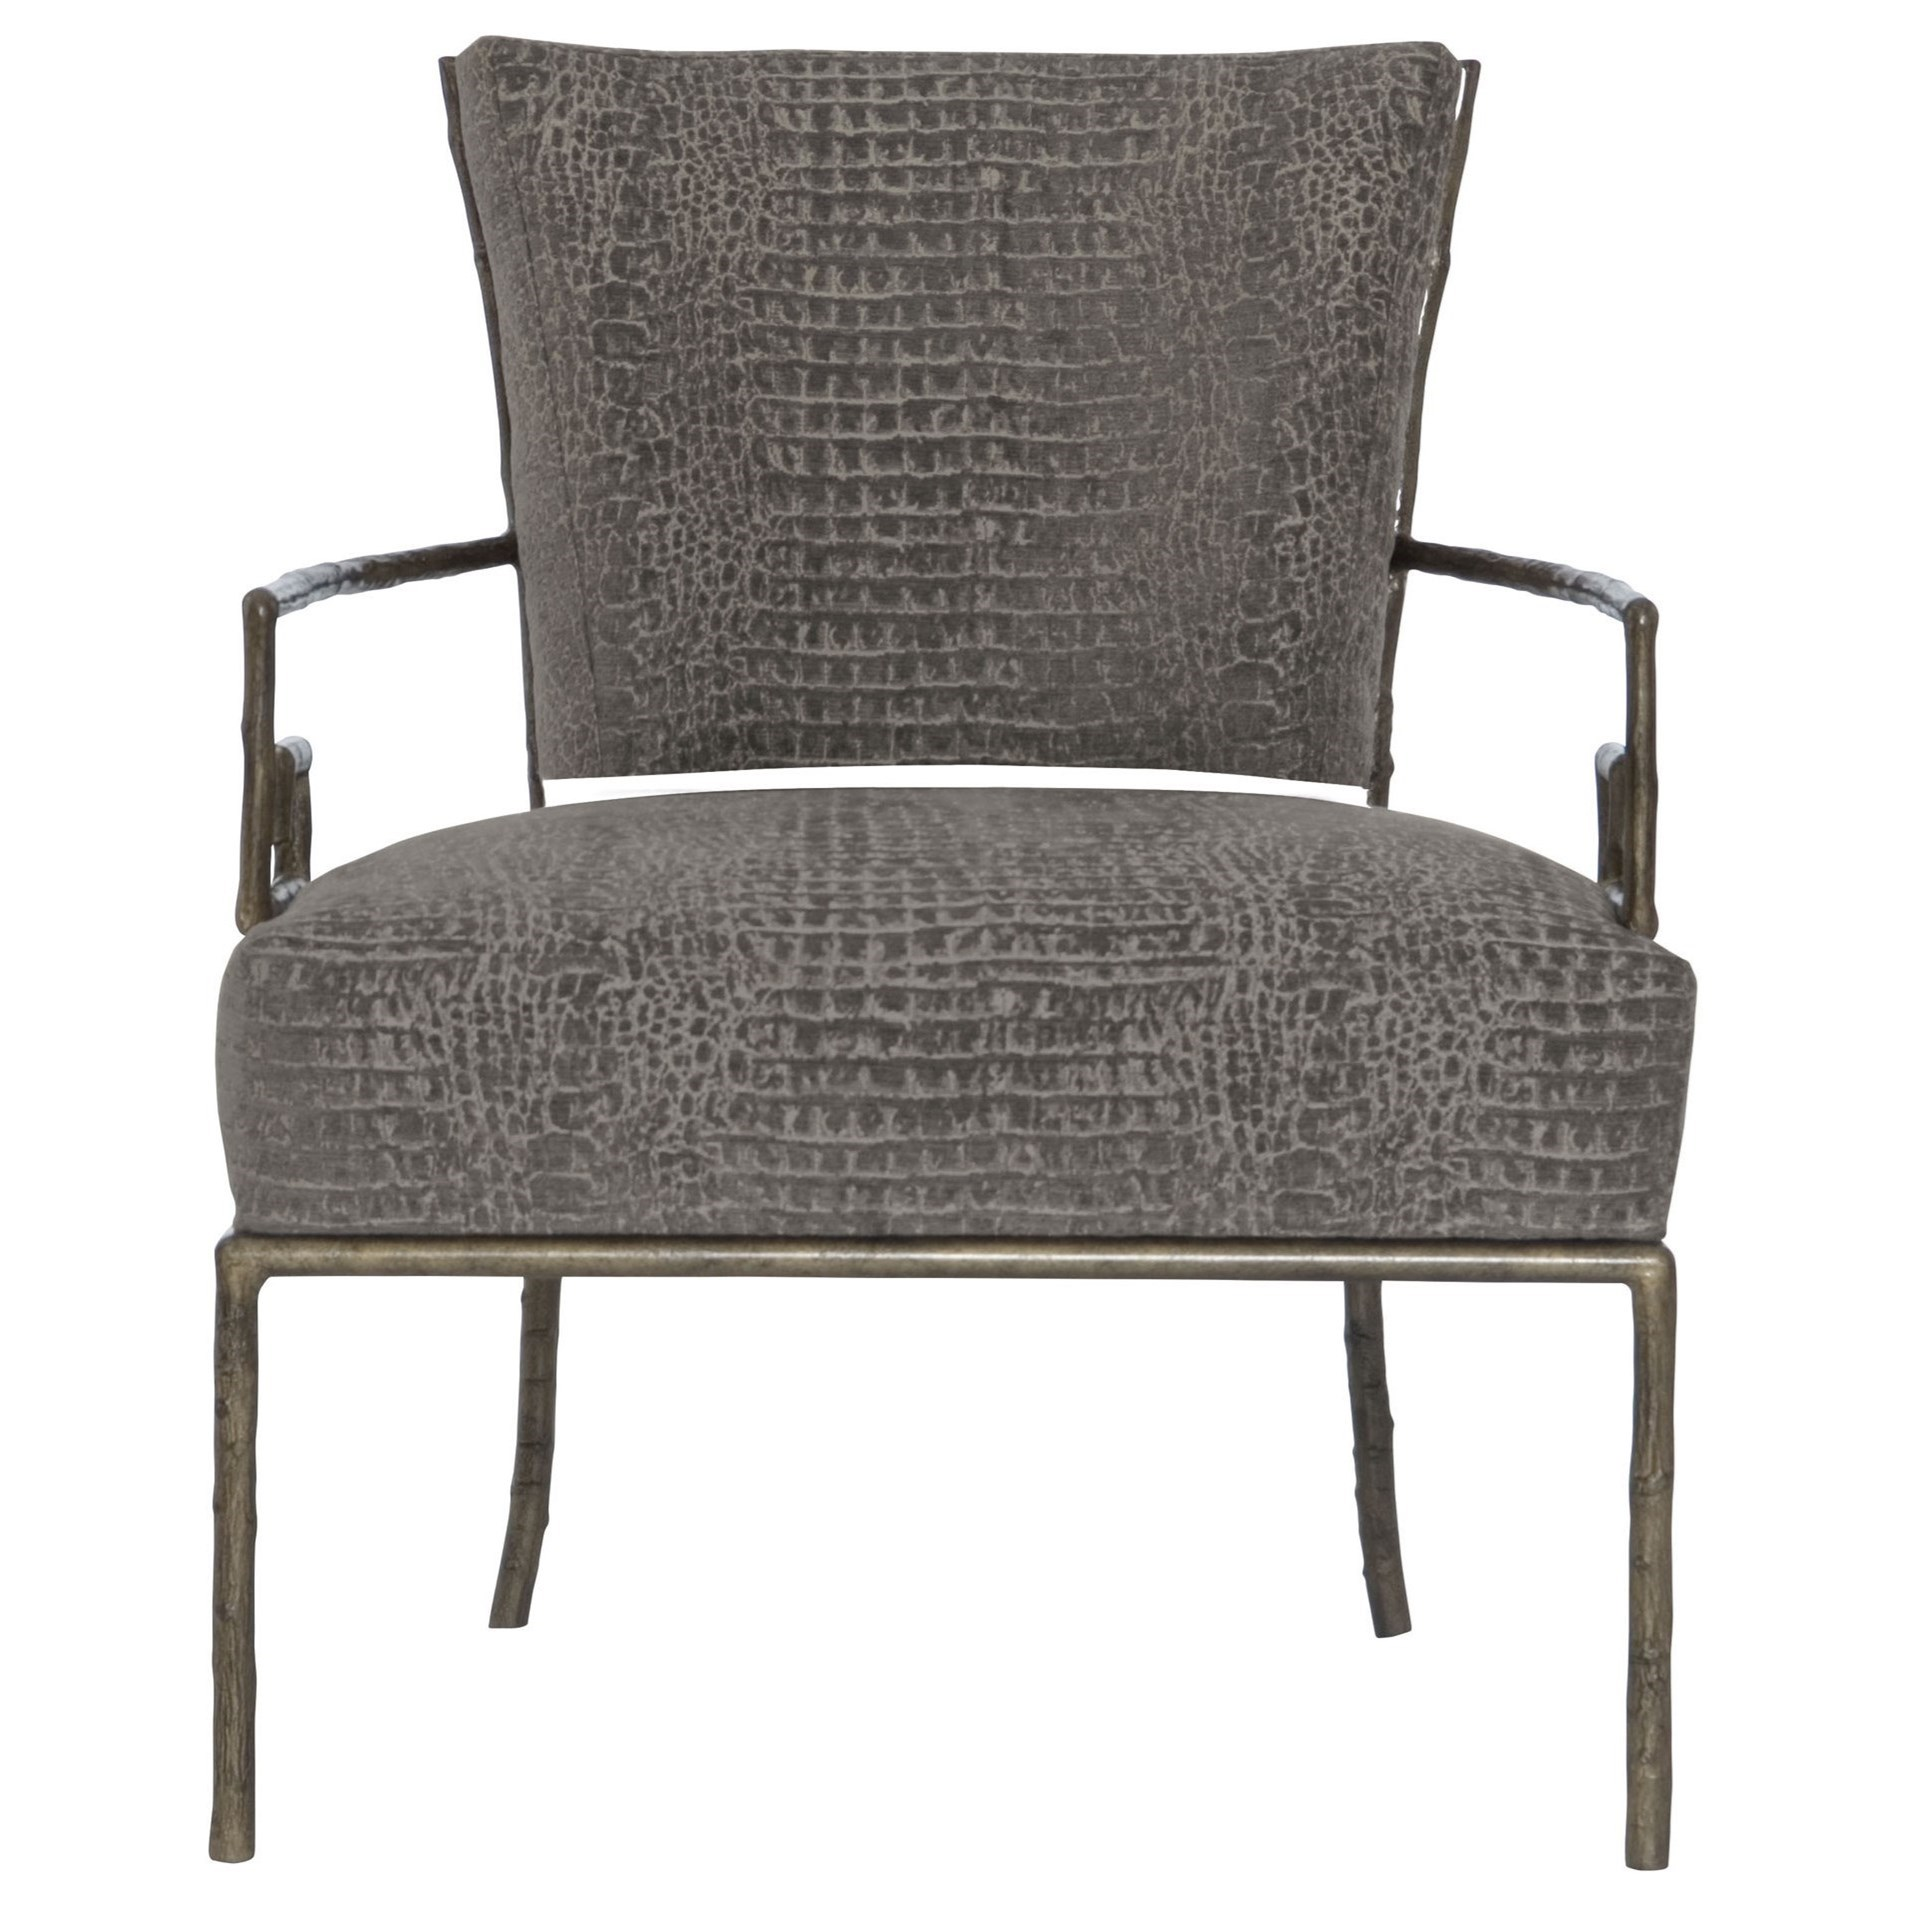 Interiors - Skylar Chair by Bernhardt at Adcock Furniture